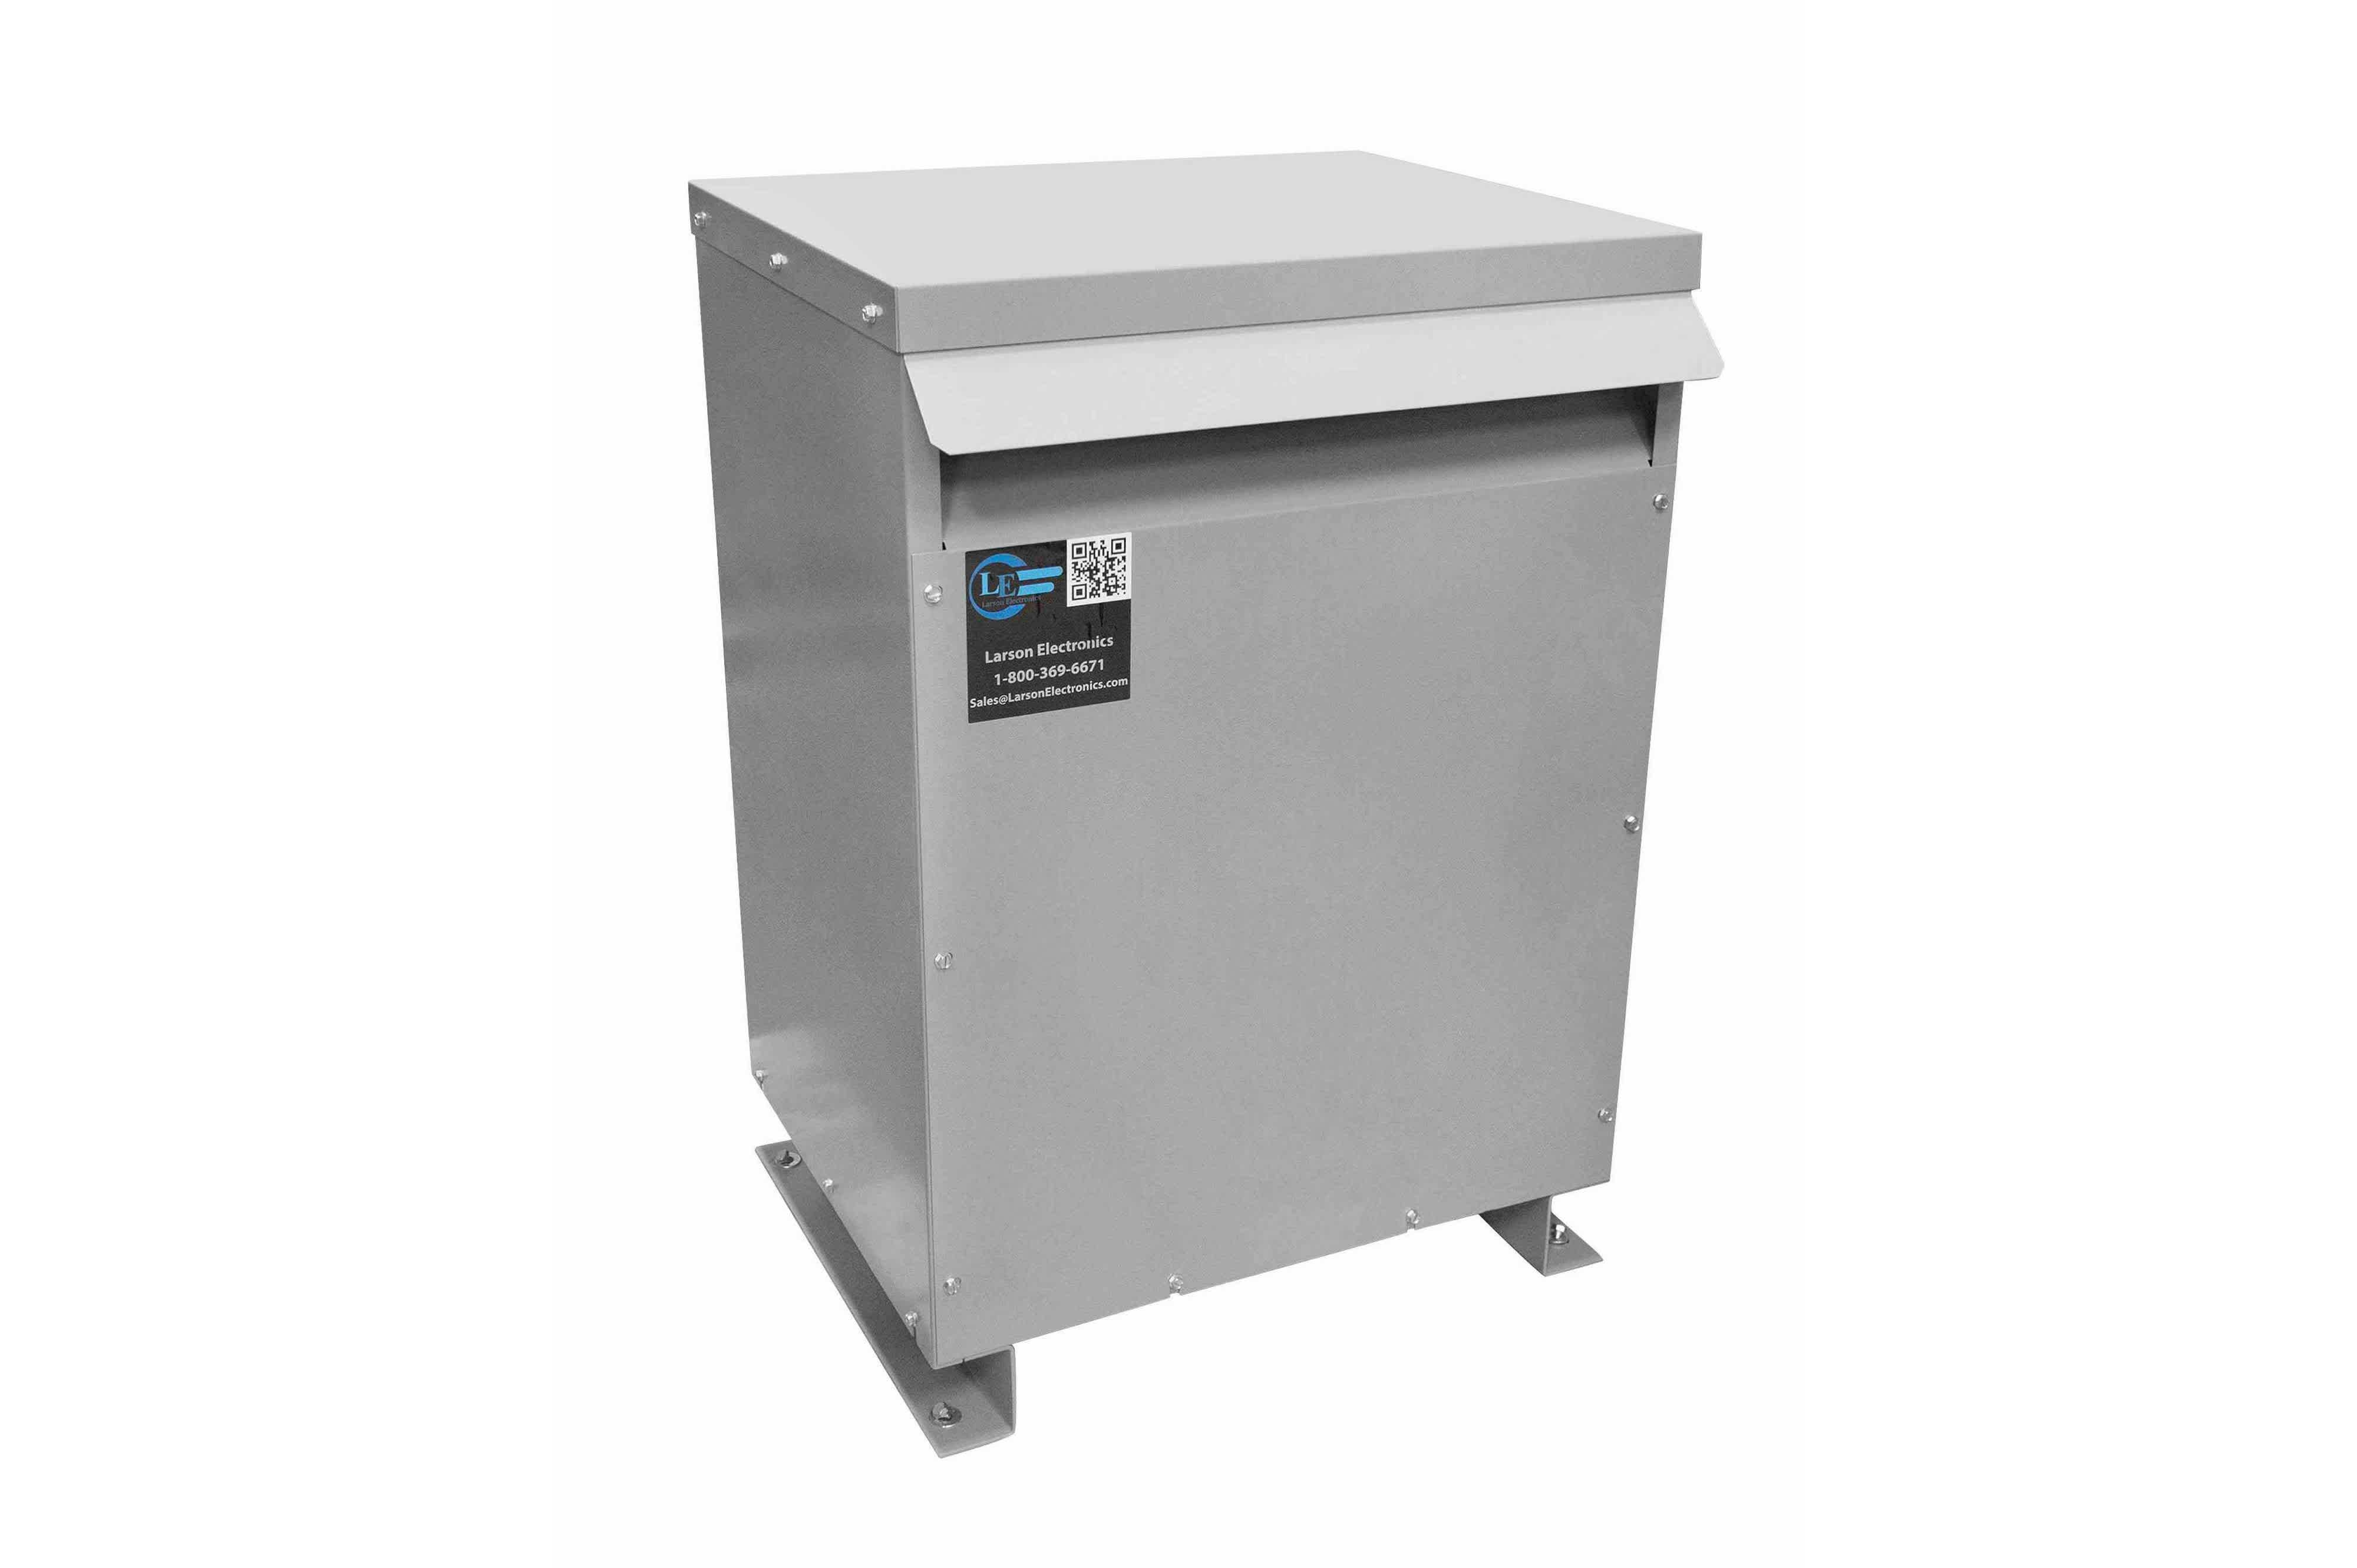 25 kVA 3PH DOE Transformer, 575V Delta Primary, 480Y/277 Wye-N Secondary, N3R, Ventilated, 60 Hz